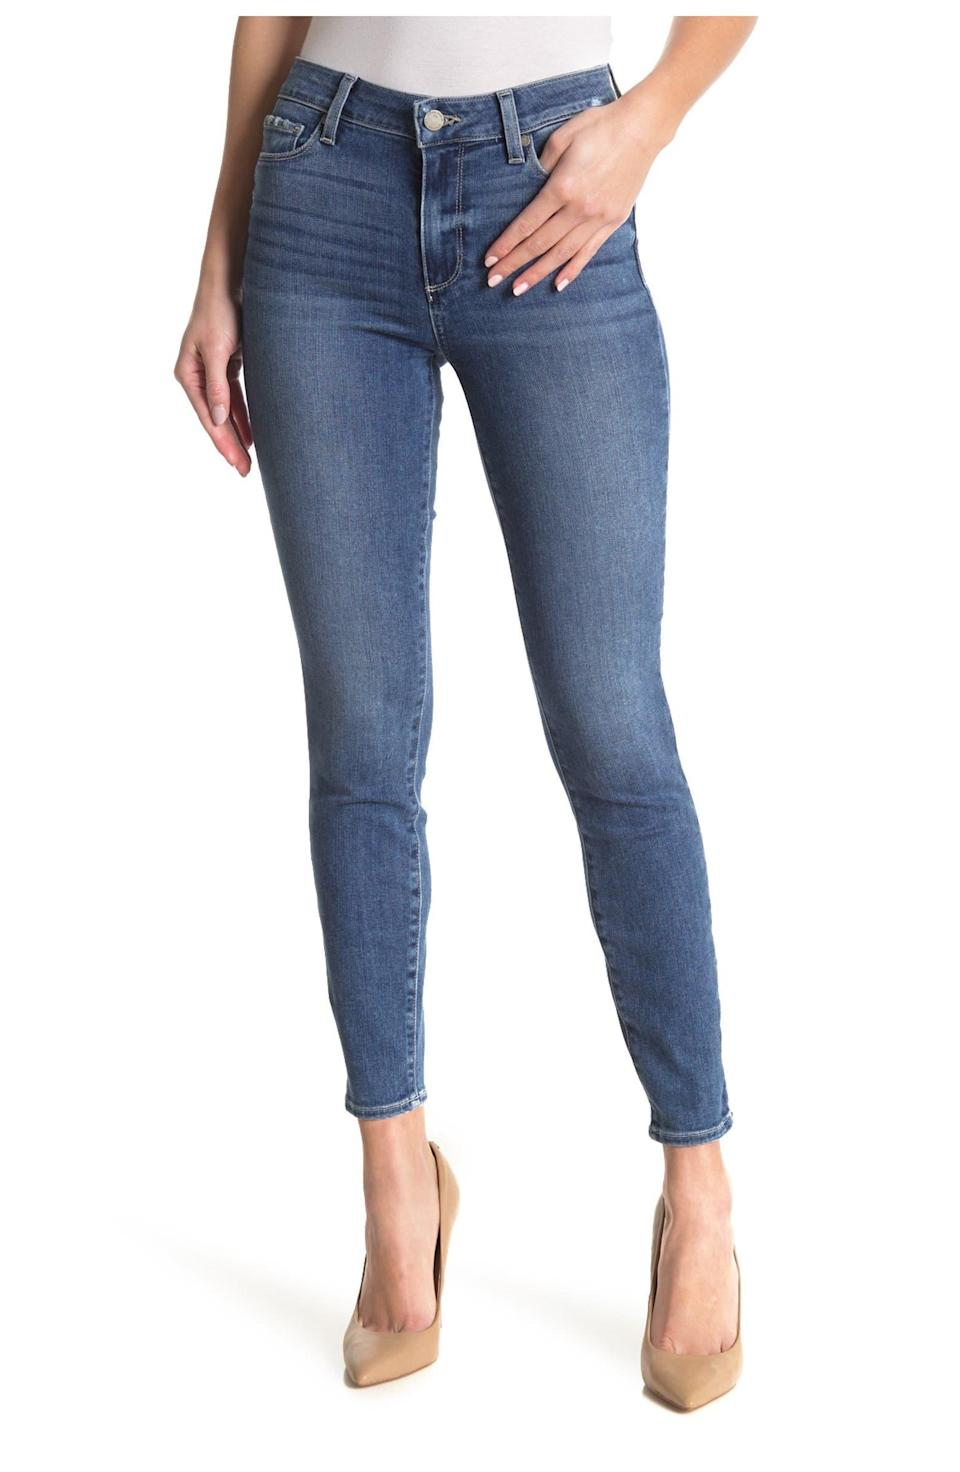 """<h2>Paige Hoxton Ankle Skinny Jeans</h2><br><strong><em>The Committed-To-Skinny-Jeans Style</em></strong><br><br>For those of us who aren't ready to go full-on Gen-Z just yet, consider Paige premium denim as your solid source for top-selling skinny jeans styles. The Hoxton style is a favorite among Nordstrom Rack shoppers who praise its classic cut and easy fit. <br><br><strong>The Hype: </strong>4.5 out of 5 stars; 11 reviews on NordstromRack.com <br><br><strong>What They're Saying</strong>: """"New favorite pair of blues: Great cut makes for a great fit. Denim has nice weight to it as it is mostly cotton. Love that they are slim, but not clinging like sausage casing. Waist is mid-to-high without gap in small of back or looking like 'mom jeans'."""" — Stellatex, NordstromRack.com reviewer<br><em><br>Shop <strong><a href=""""https://www.nordstromrack.com/s/paige-hoxton-ankle-skinny-jeans/6044109"""" rel=""""nofollow noopener"""" target=""""_blank"""" data-ylk=""""slk:NordstromRack.com"""" class=""""link rapid-noclick-resp"""">NordstromRack.com</a></strong></em><br><br><br><br><br><strong>PAIGE</strong> Hoxton Ankle Skinny Jeans, $, available at <a href=""""https://go.skimresources.com/?id=30283X879131&url=https%3A%2F%2Fwww.nordstromrack.com%2Fs%2Fpaige-hoxton-ankle-skinny-jeans%2F6044109"""" rel=""""nofollow noopener"""" target=""""_blank"""" data-ylk=""""slk:Nordstrom Rack"""" class=""""link rapid-noclick-resp"""">Nordstrom Rack</a>"""